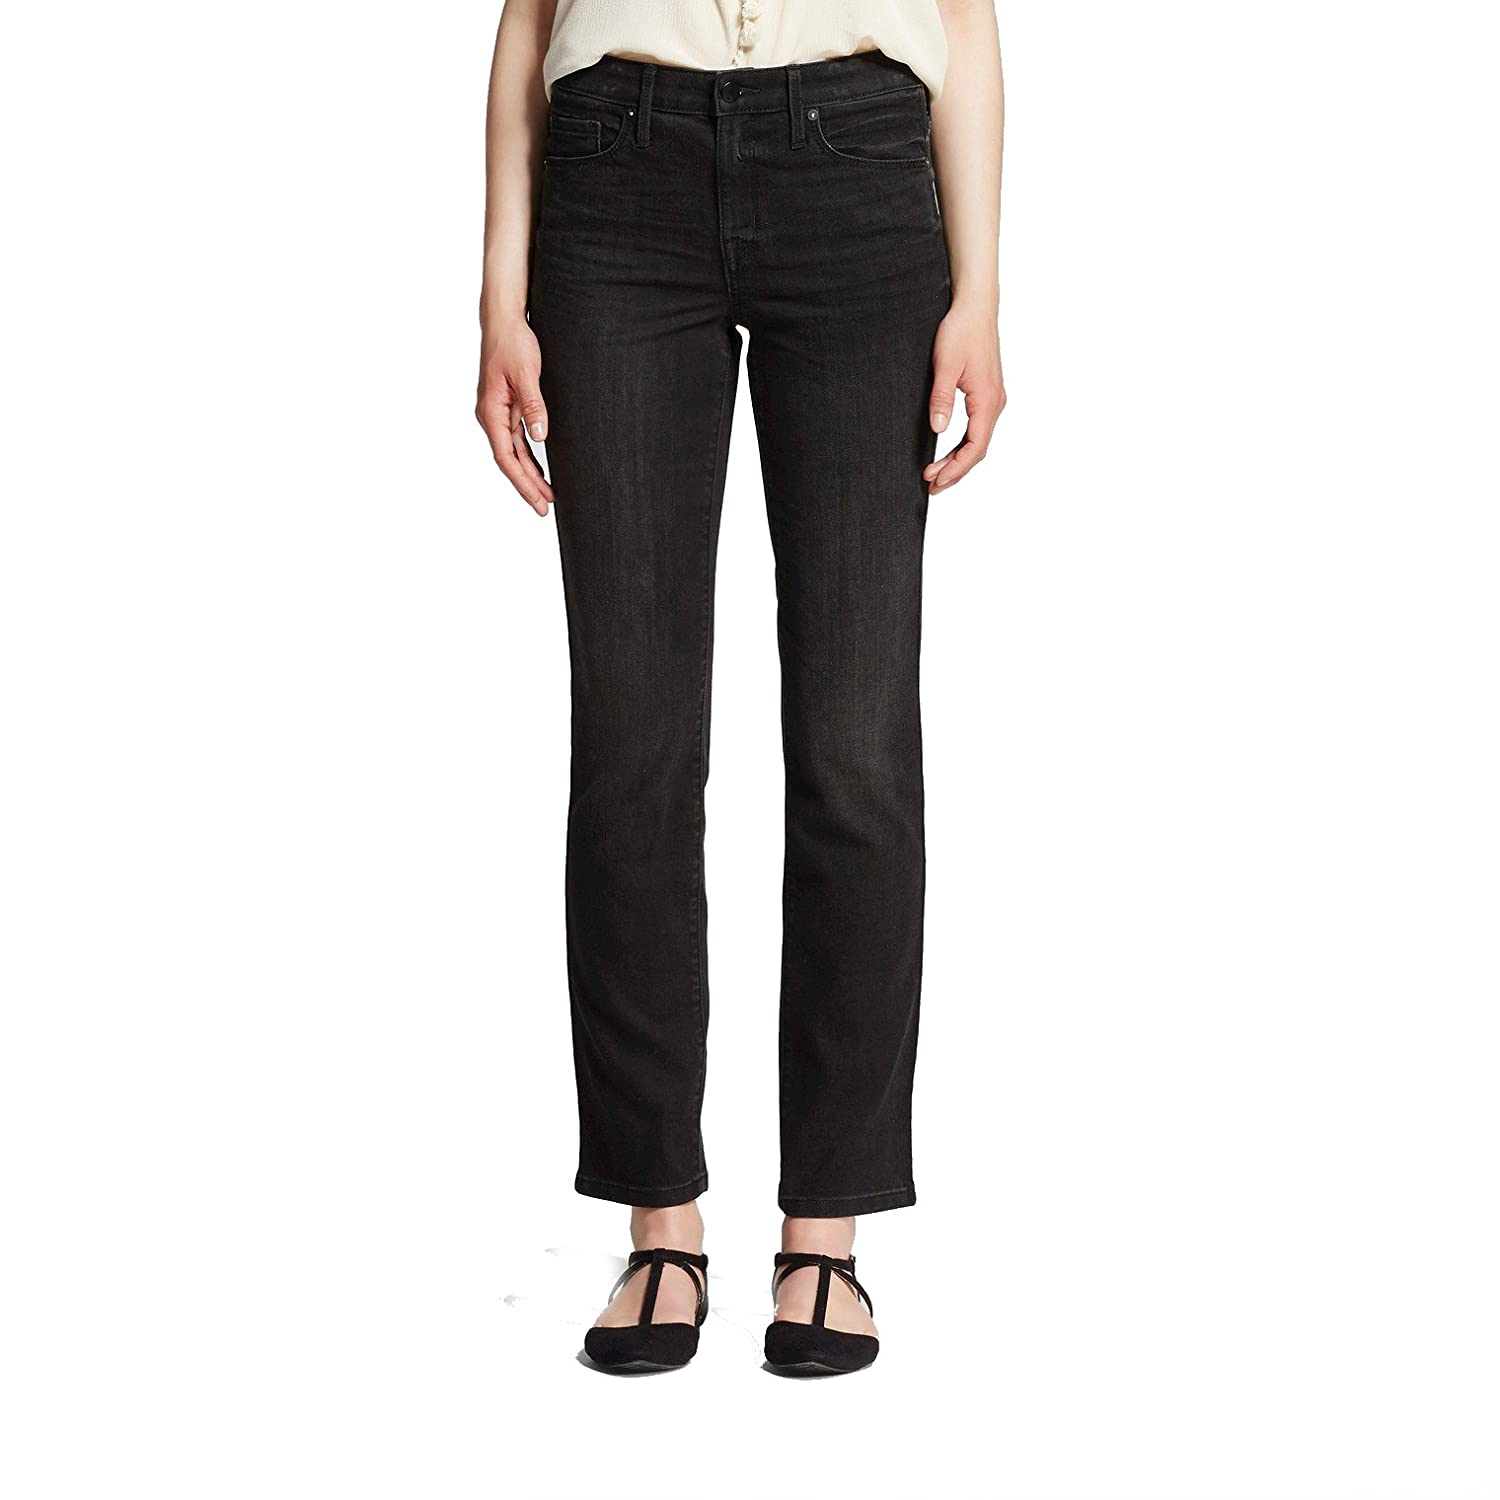 Mossimo High Rise Straight Jeans Black